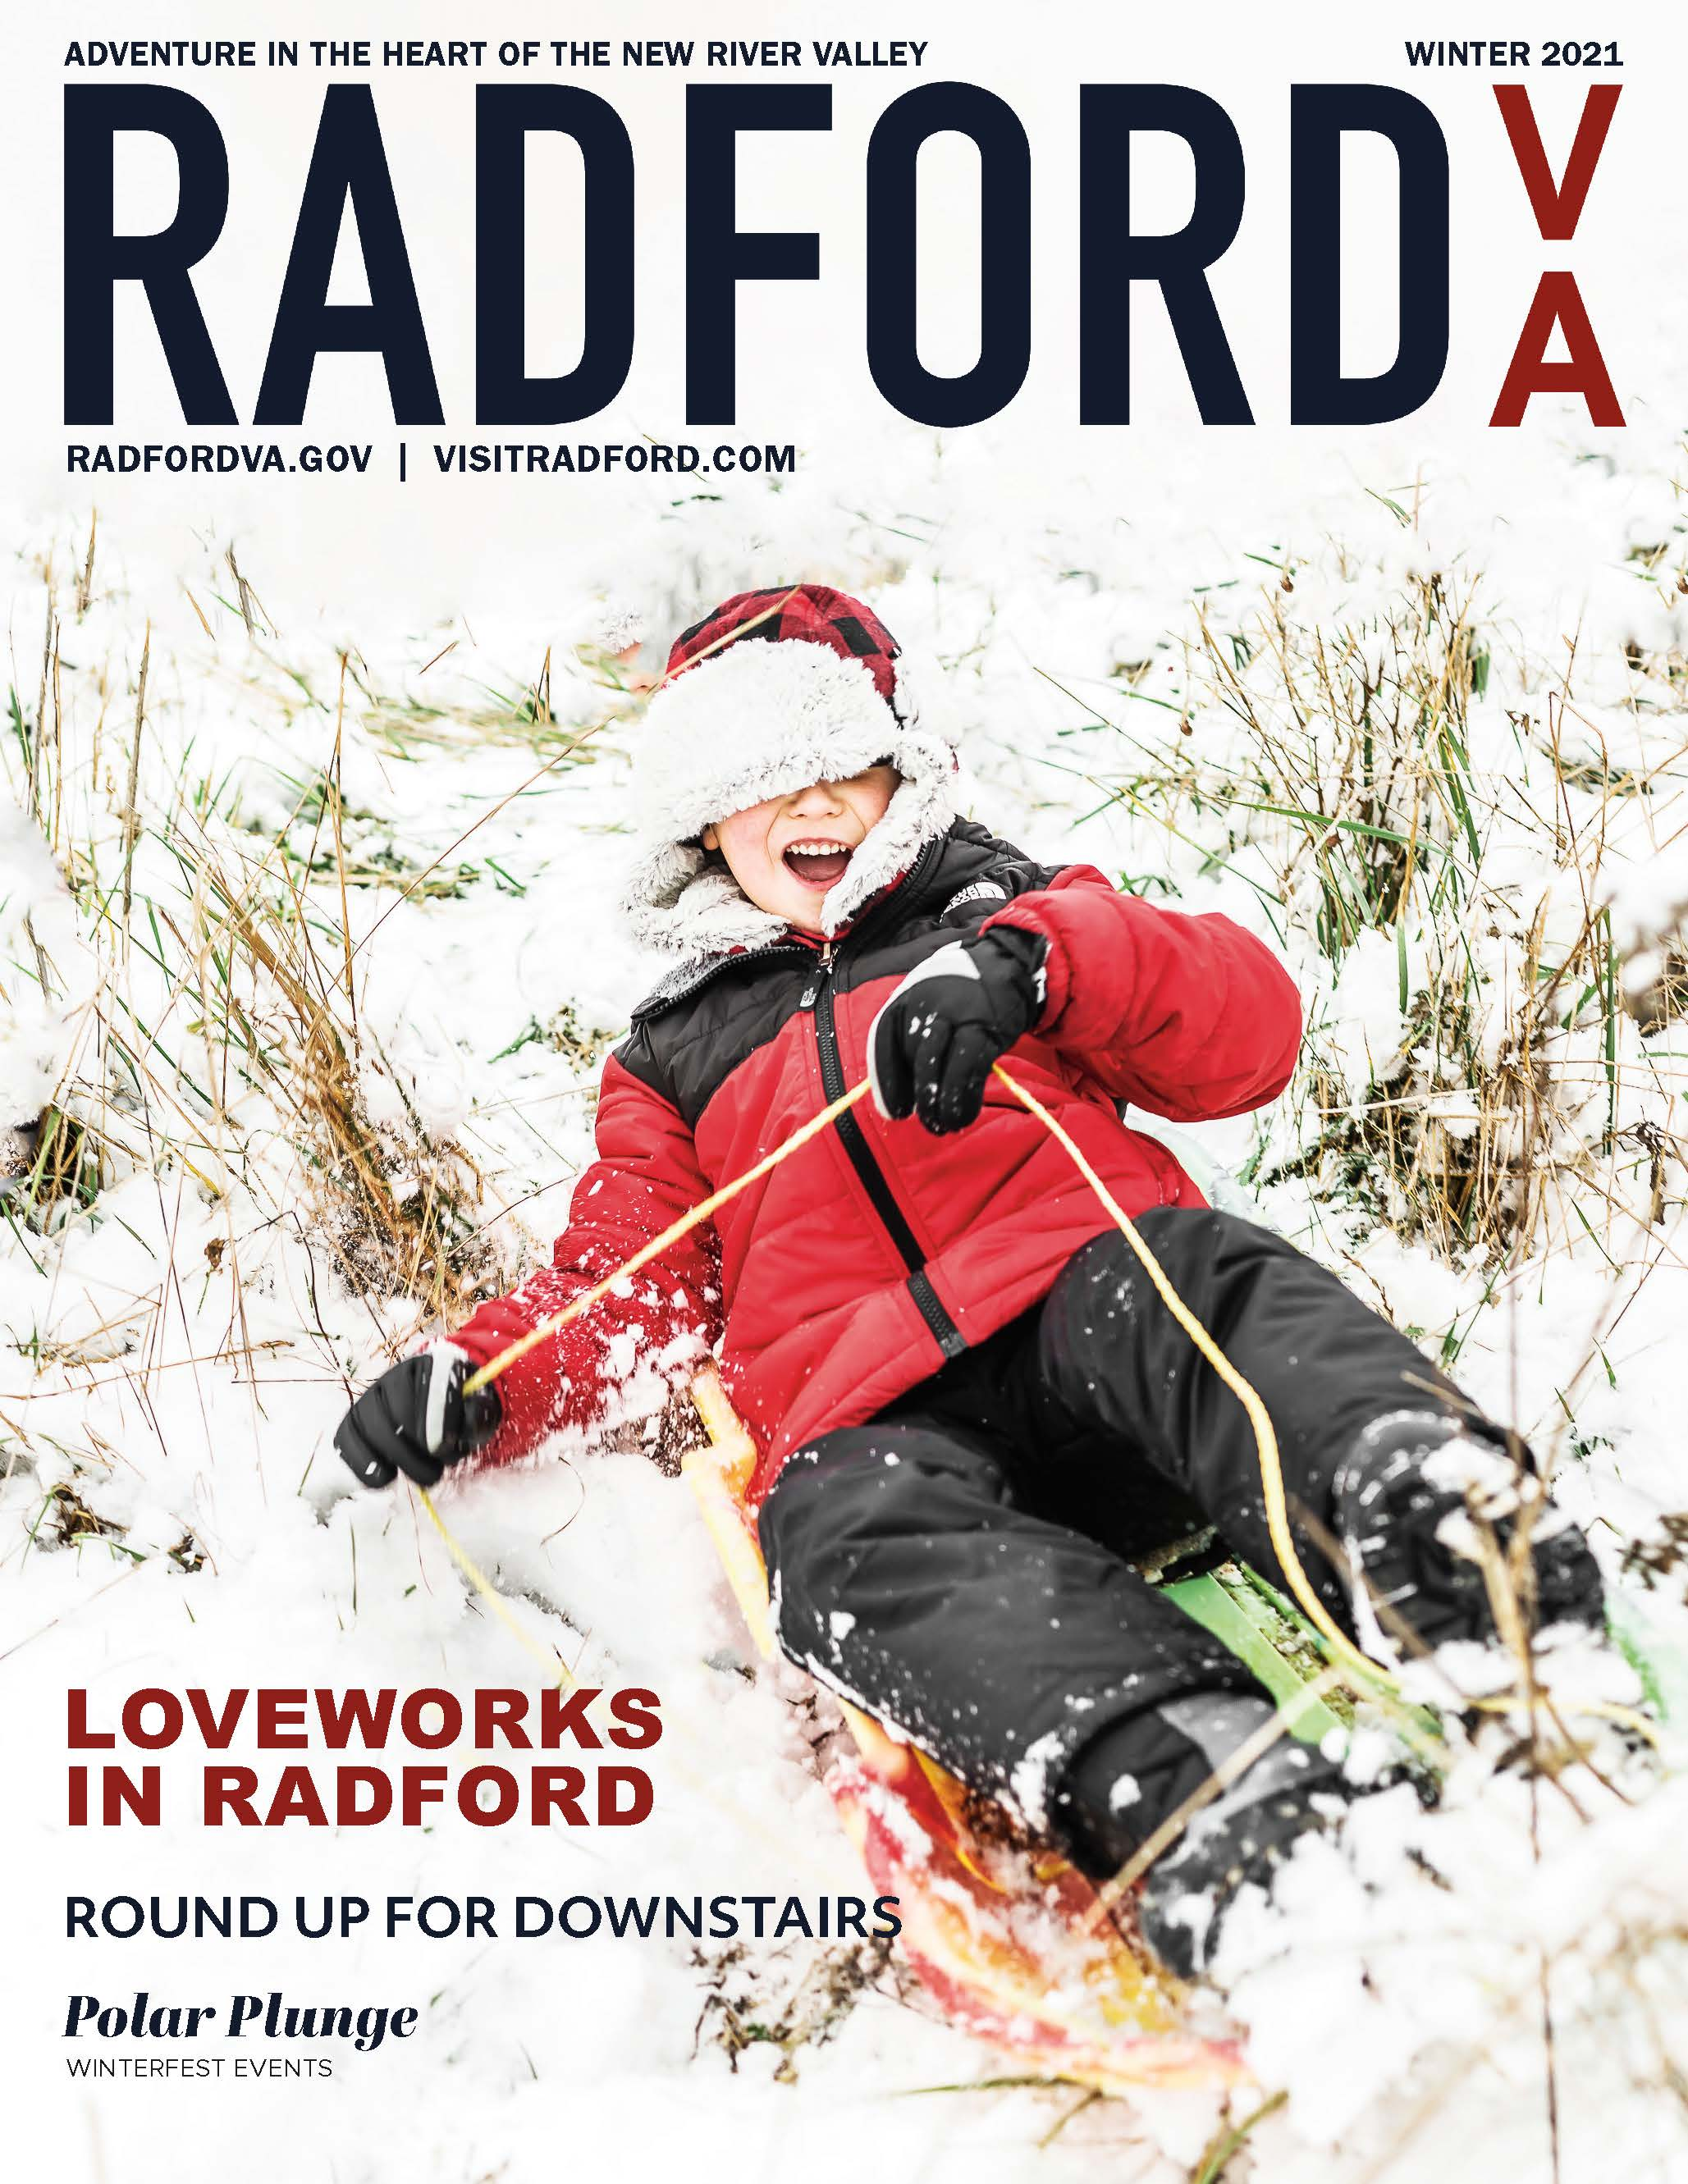 Radford Magazine Winter2021 Finalv2 high-res (1)